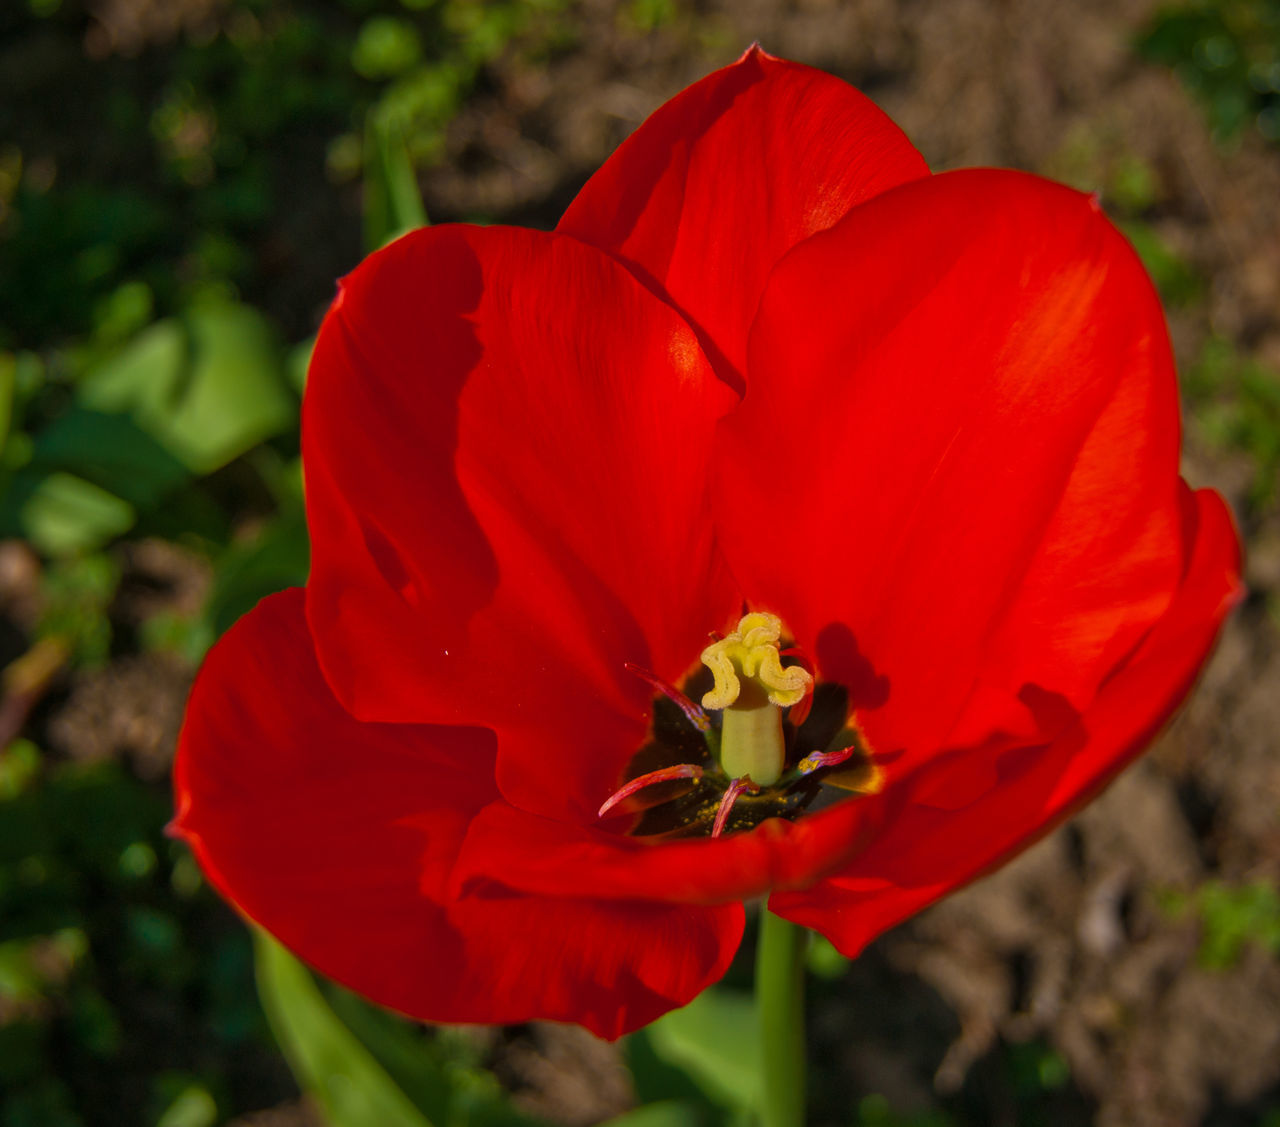 flower, petal, red, beauty in nature, nature, flower head, fragility, growth, outdoors, freshness, blooming, plant, focus on foreground, close-up, day, no people, poppy